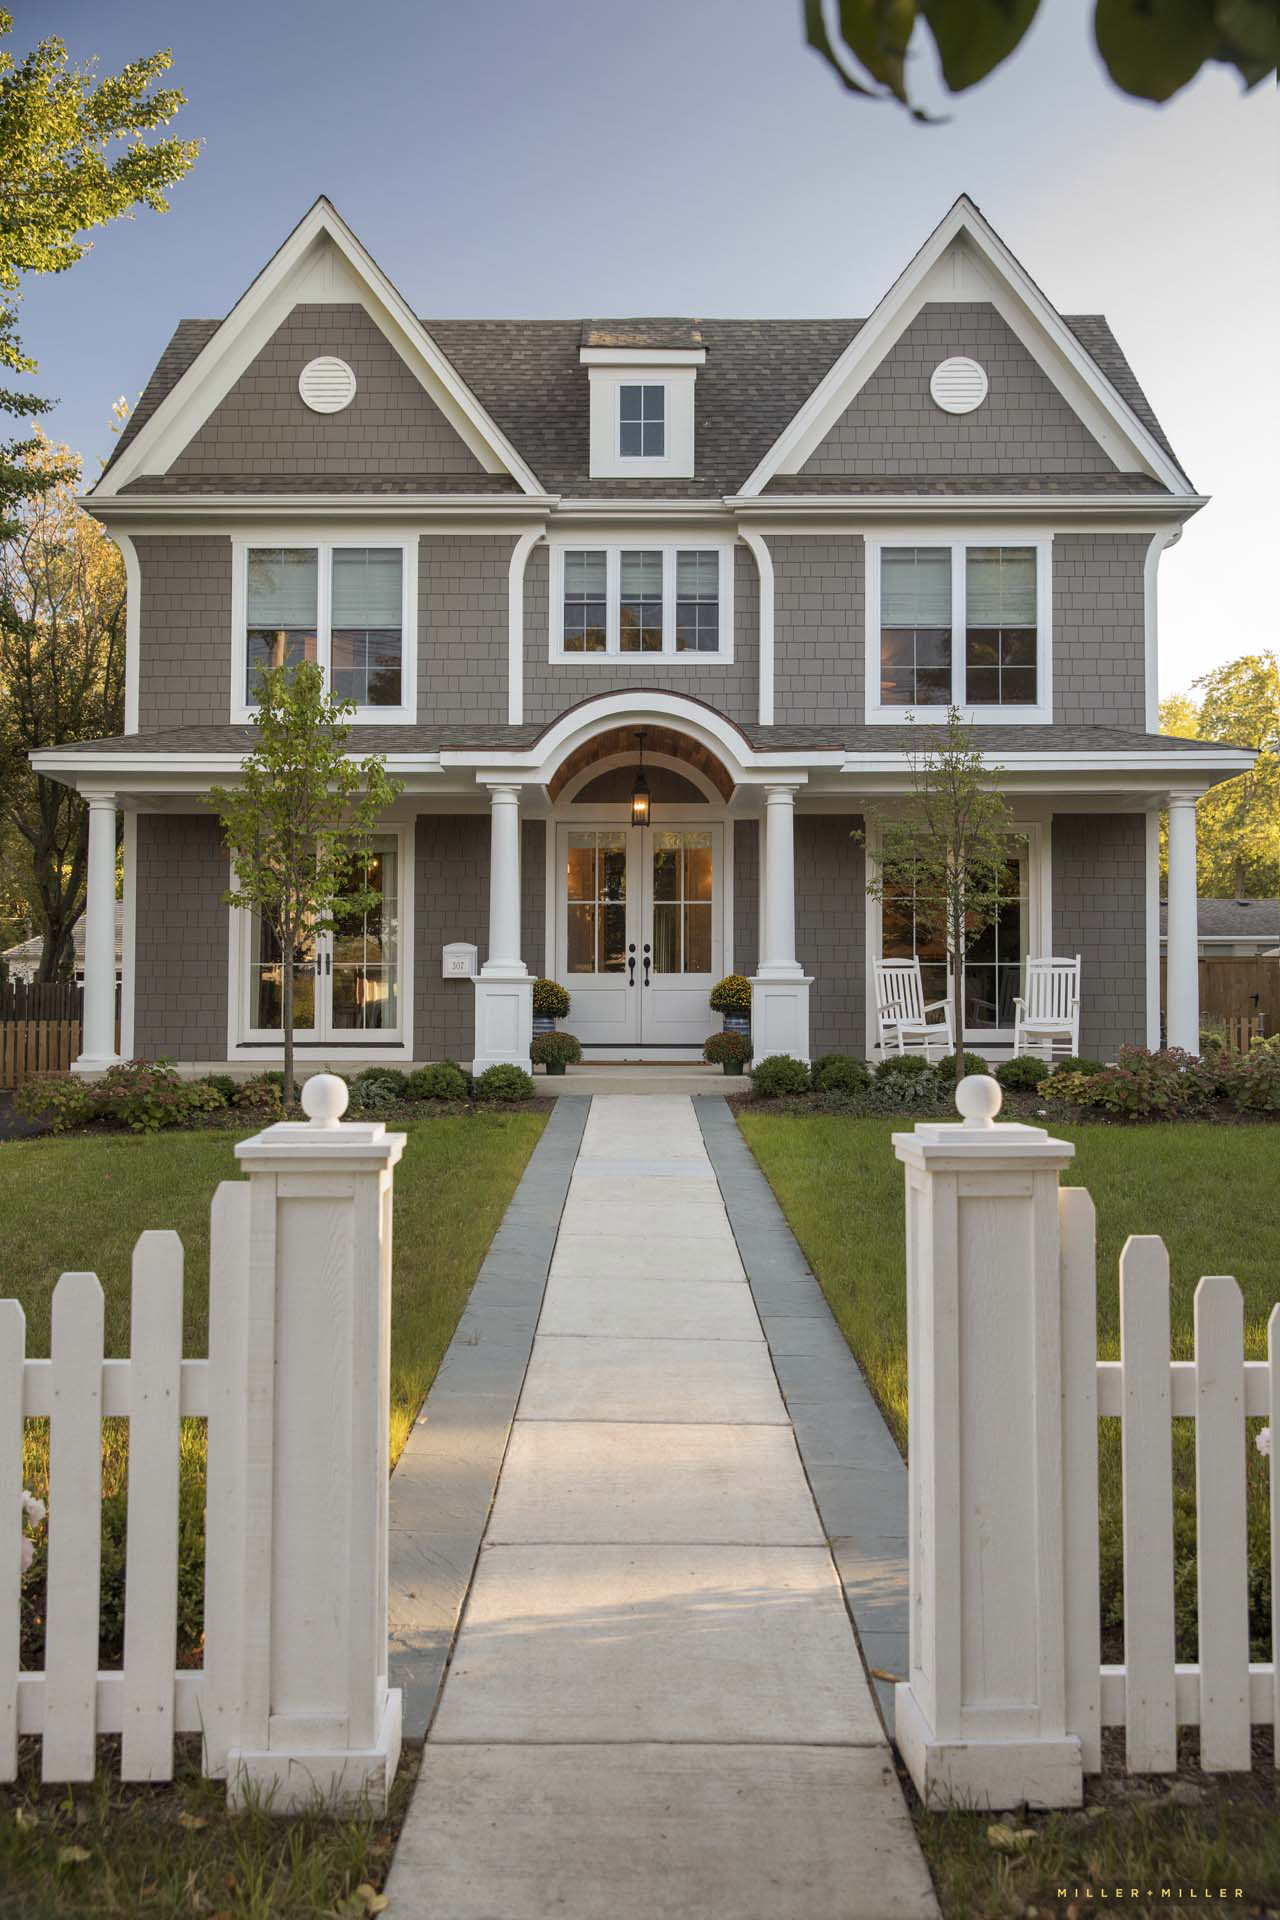 white picket fence fencing walkway